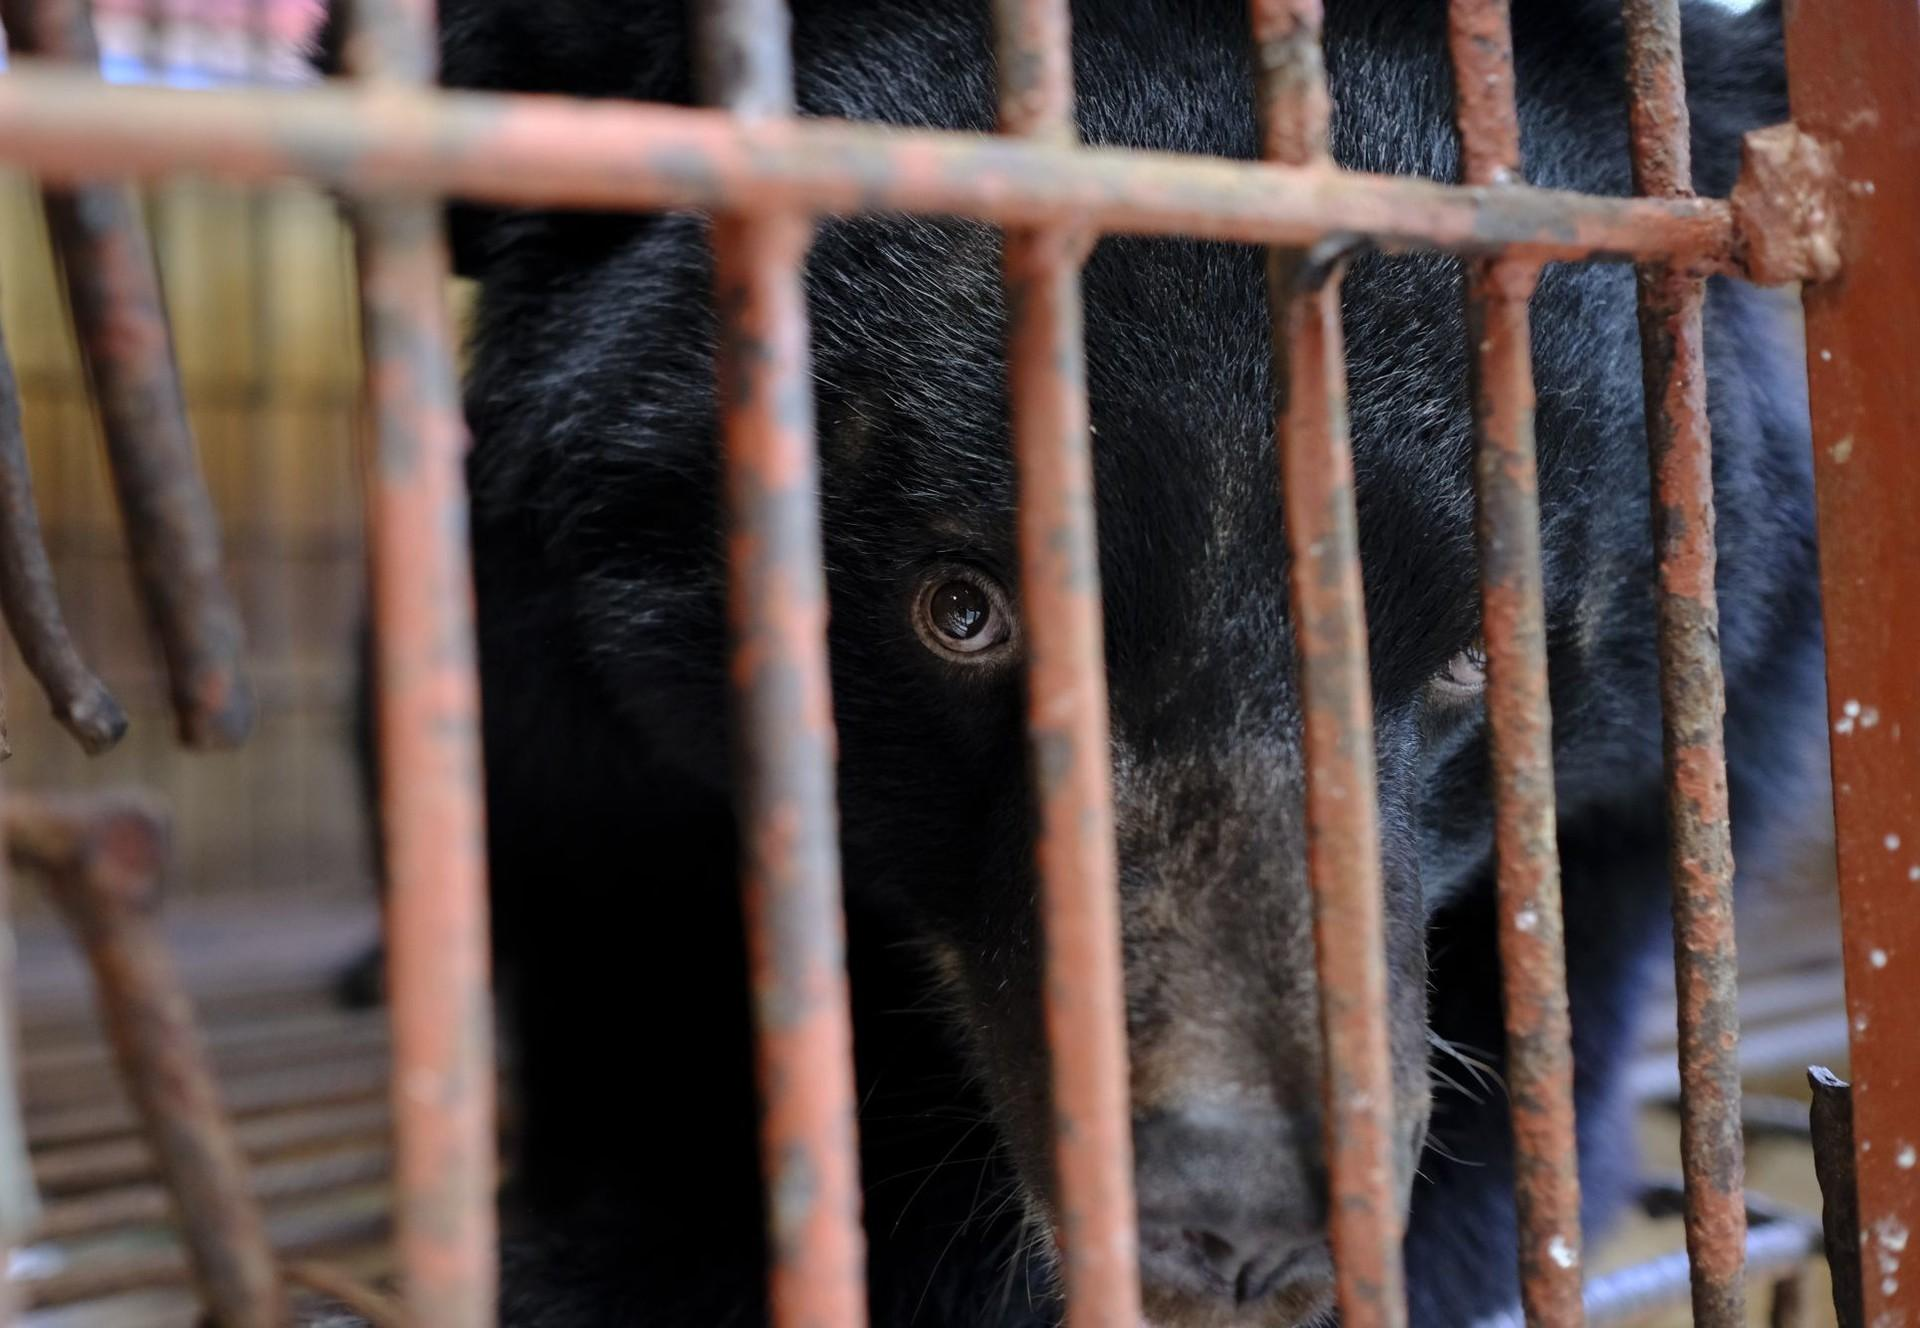 Asiatic black bear in a cage